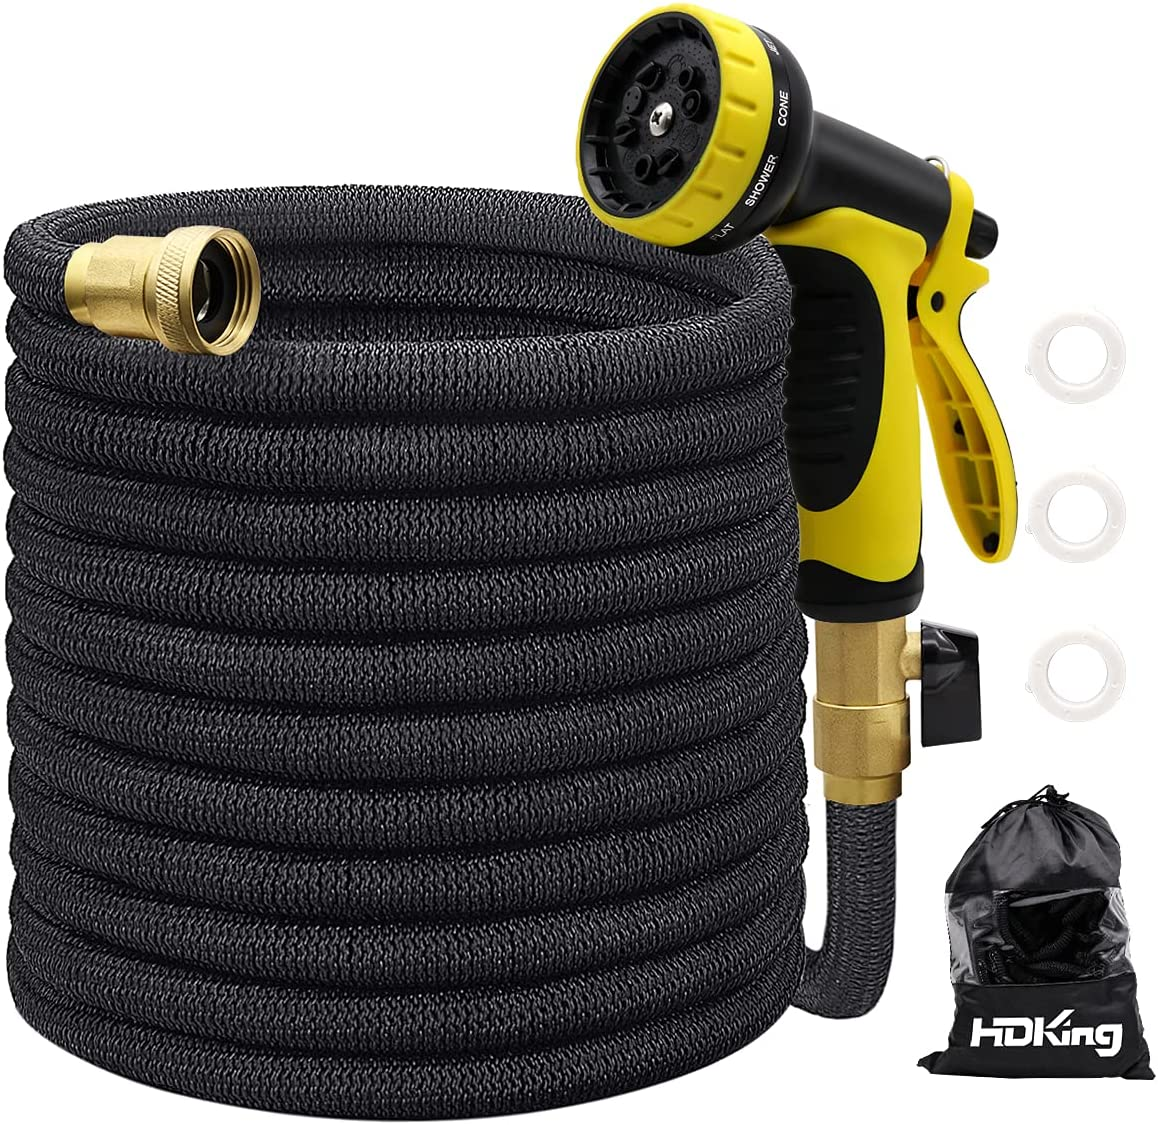 25FT Garden Hose Expandable, Water Collapsible Hose with 10 Function Spray Nozzle, Triple Latex Core, 3/4